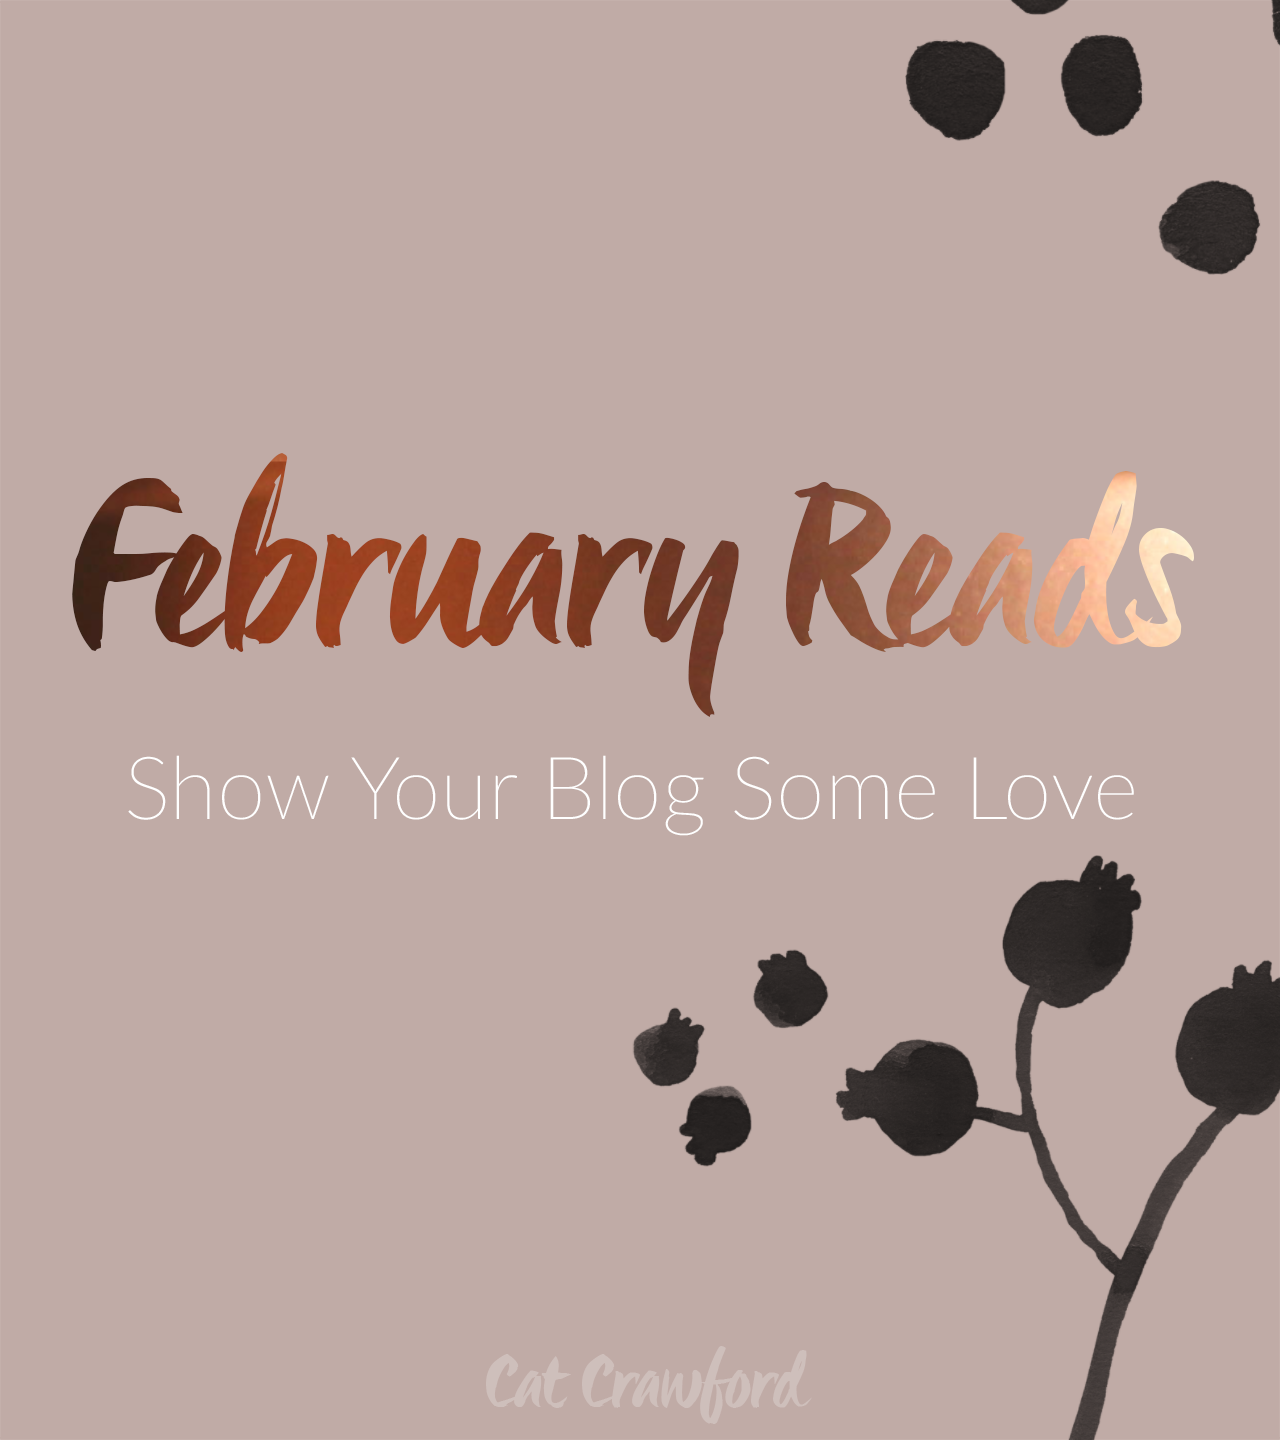 Favourite Posts From February To Help You Show Your Blog Some Love